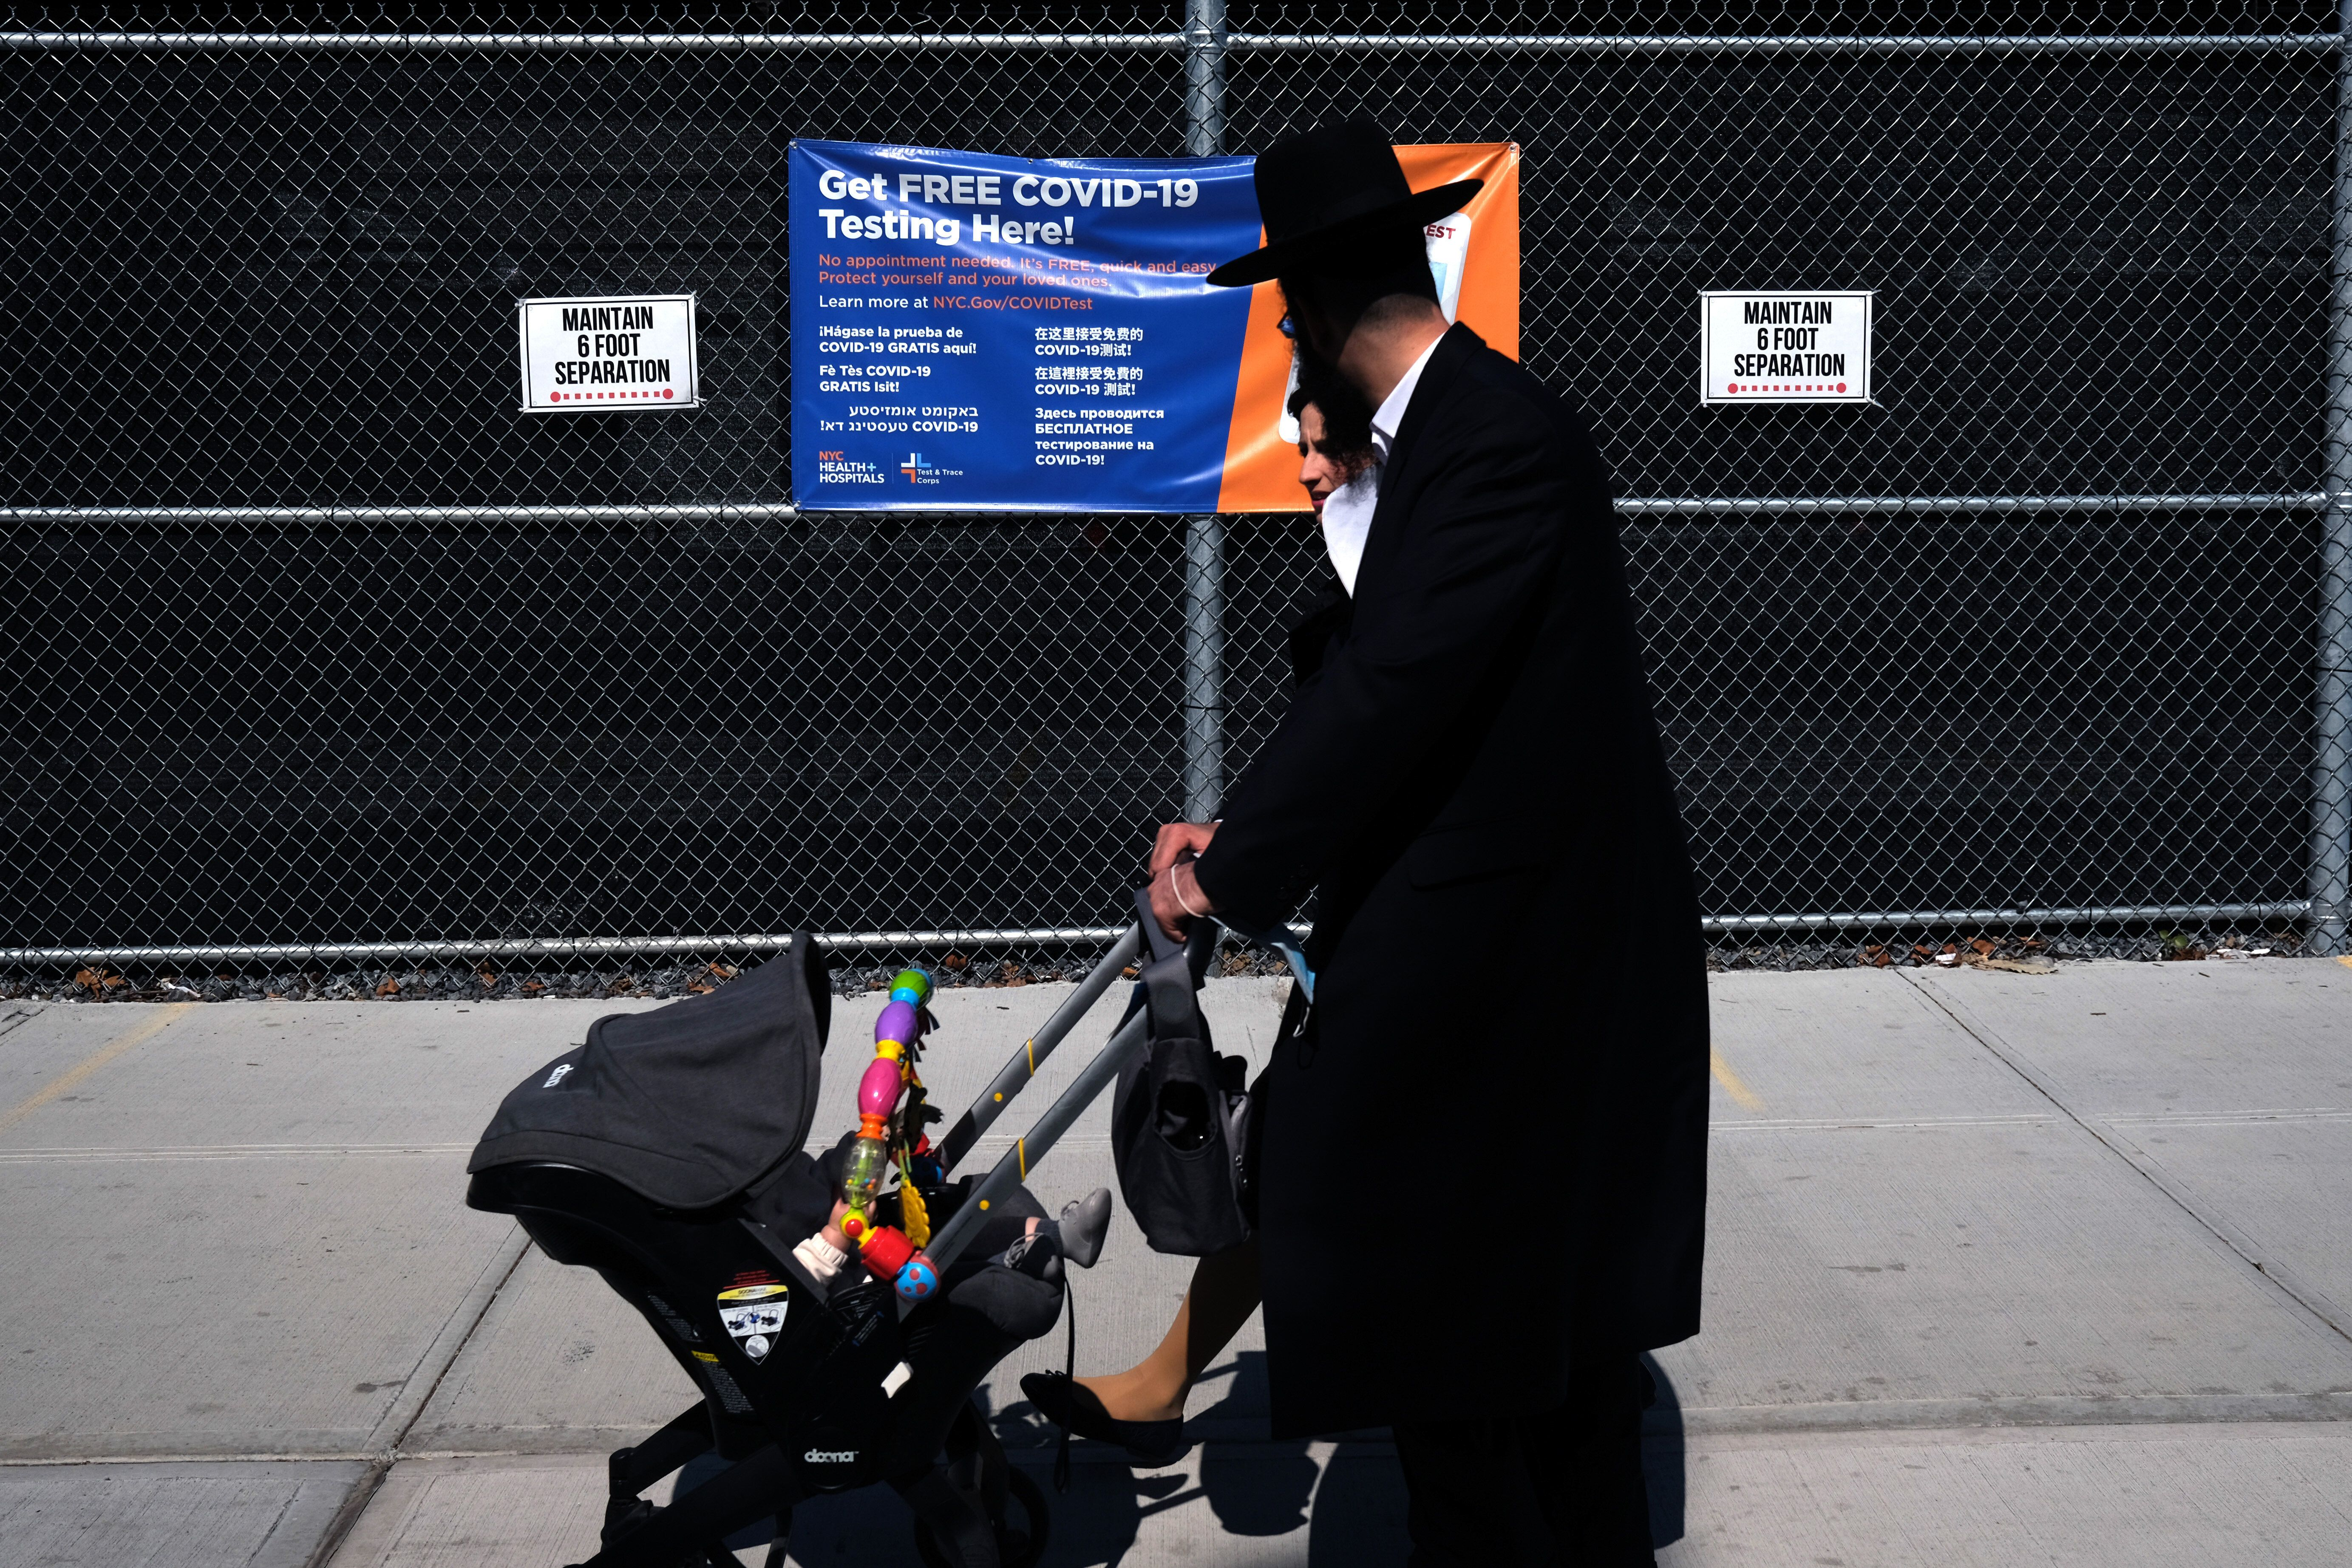 Residents walk by a COVID-19 testing site in the Brooklyn neighborhood of Borough Park on September 23, 2020 in New York City